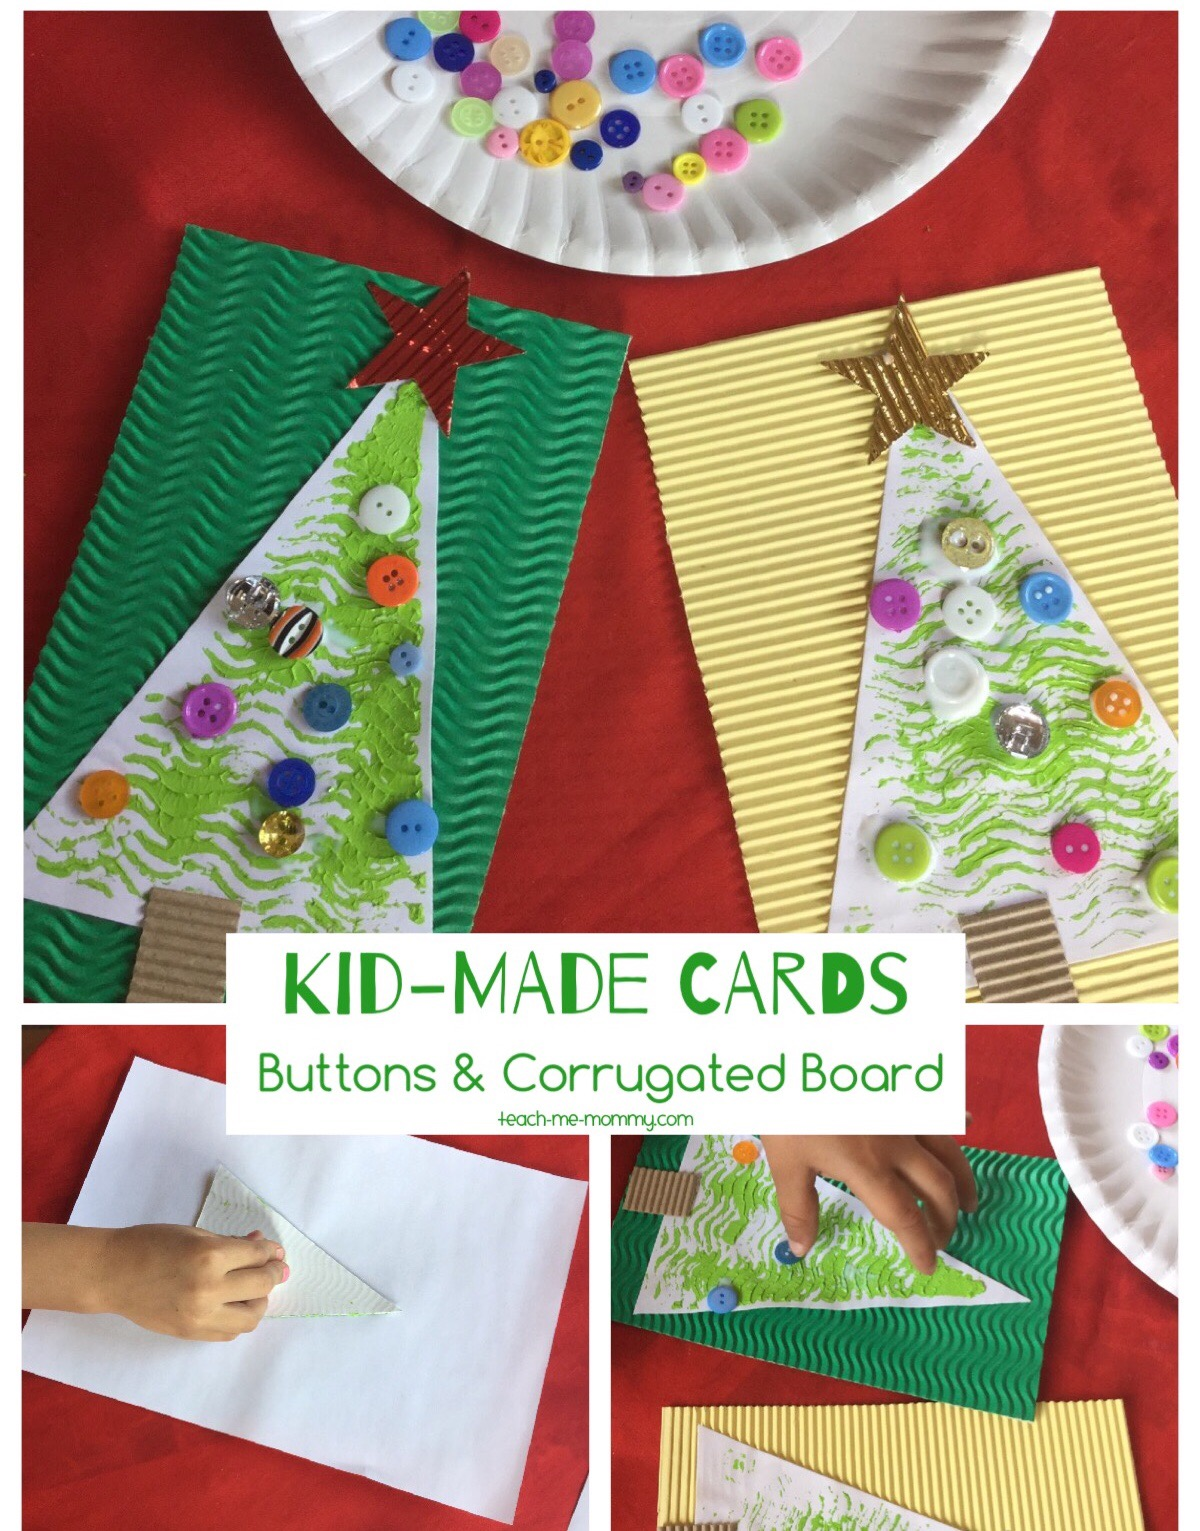 button & corrugated board cards